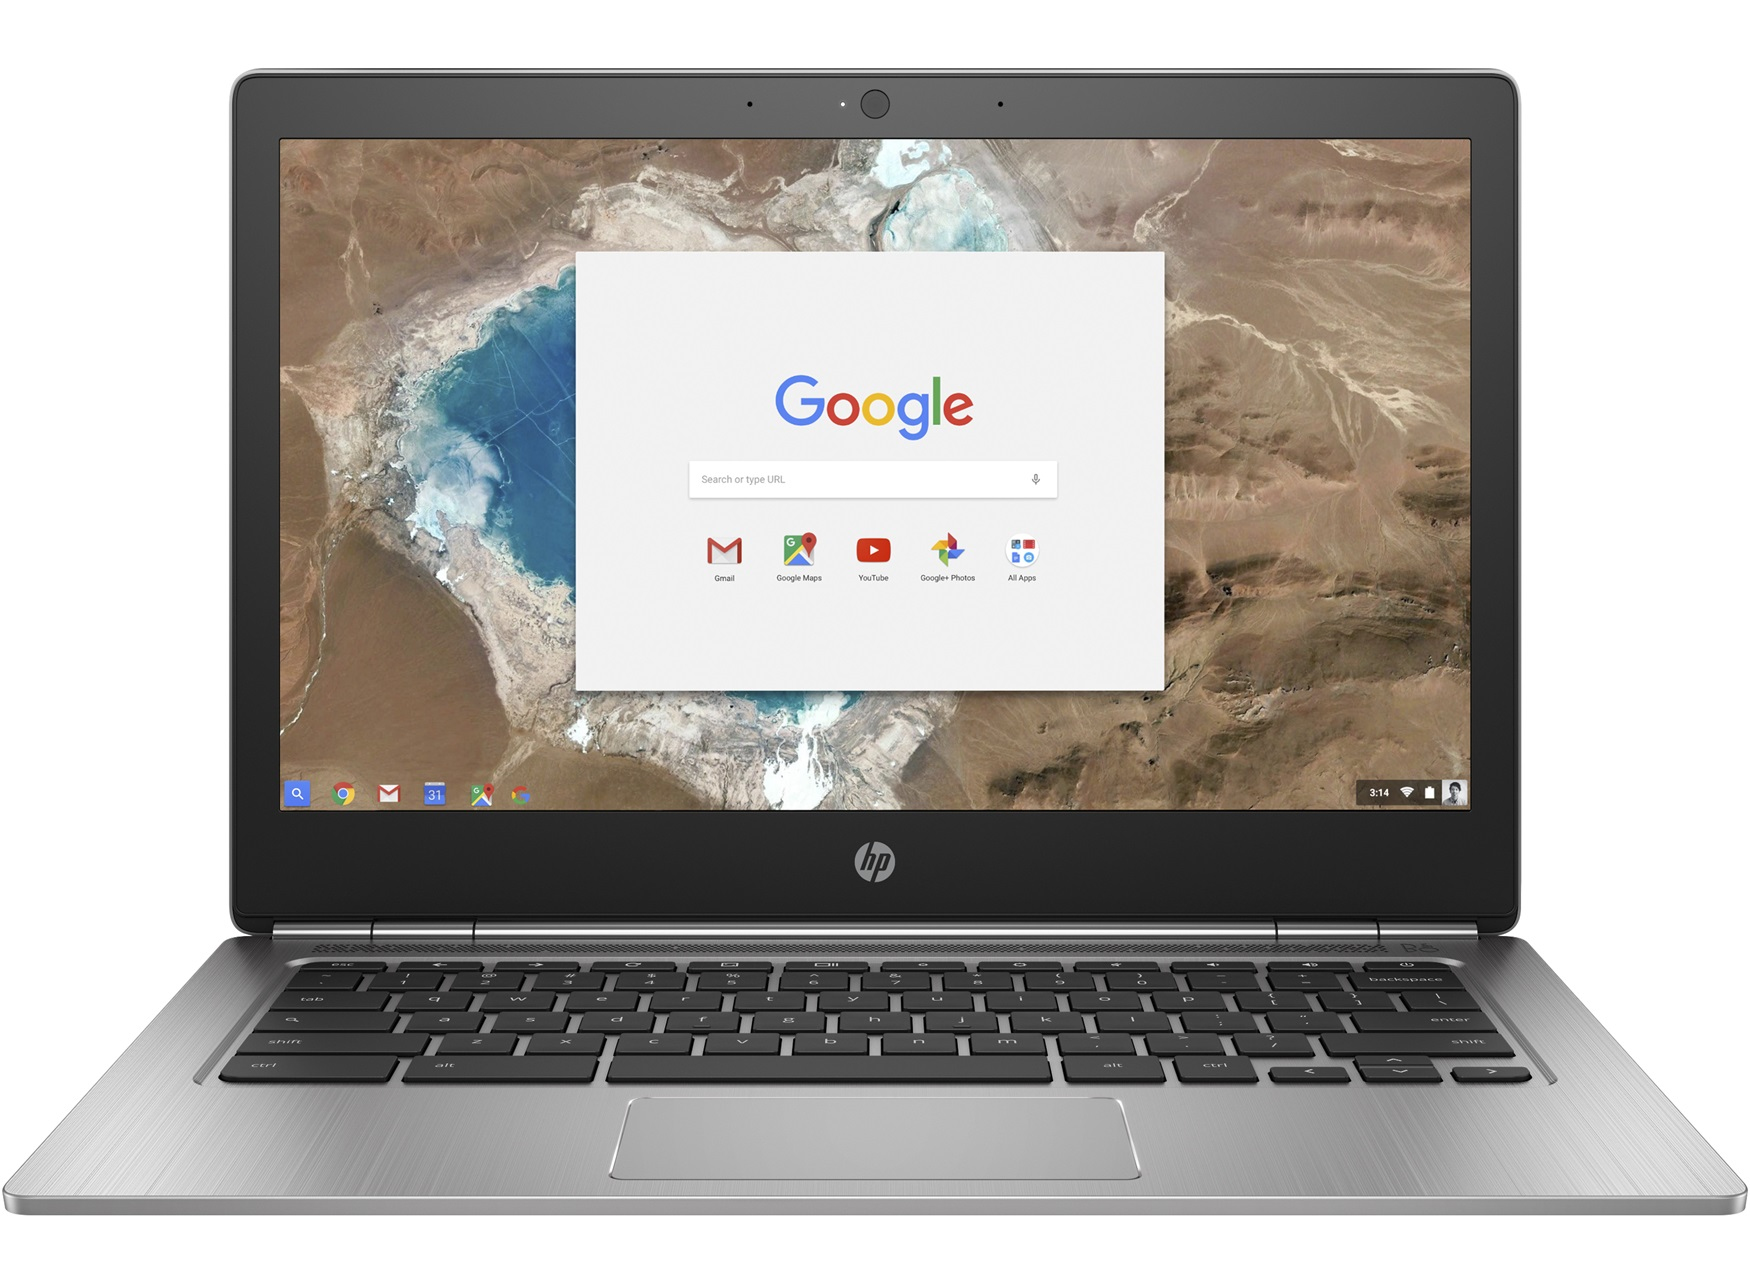 HP ChromeBook 13 G1 Intel CORE M5-6Y57 33,7cm 13,3Zoll QHD+ BV UMA 8GB 32GB/eMMC WLAN BT Chrome64 1J. Gar. (DE)